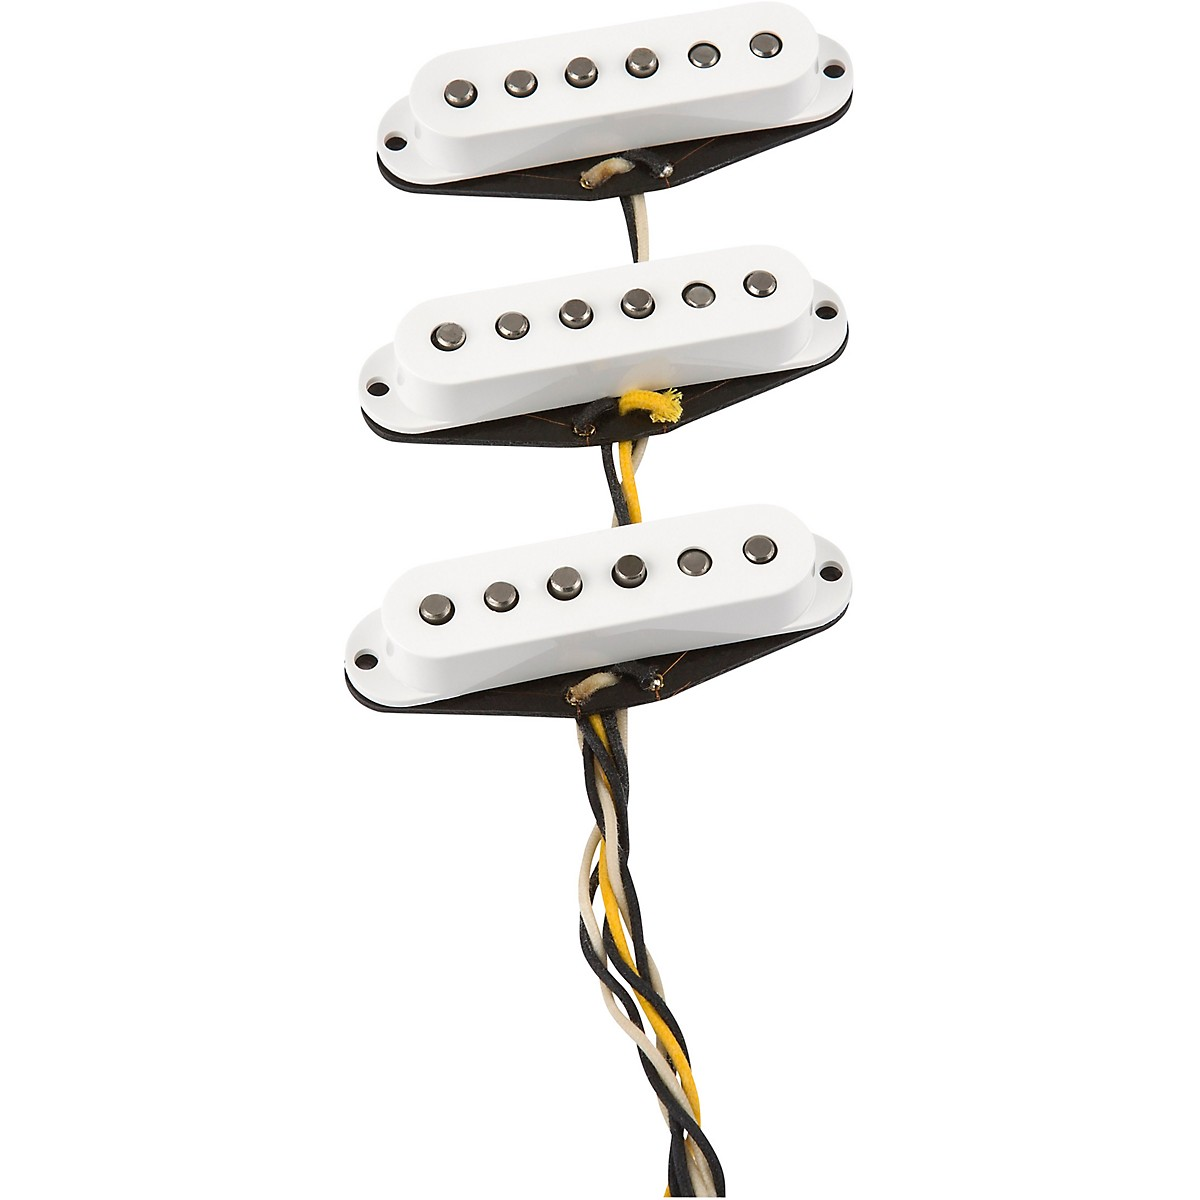 Fender Custom Shop Fat '60s Stratocaster Pickup Set